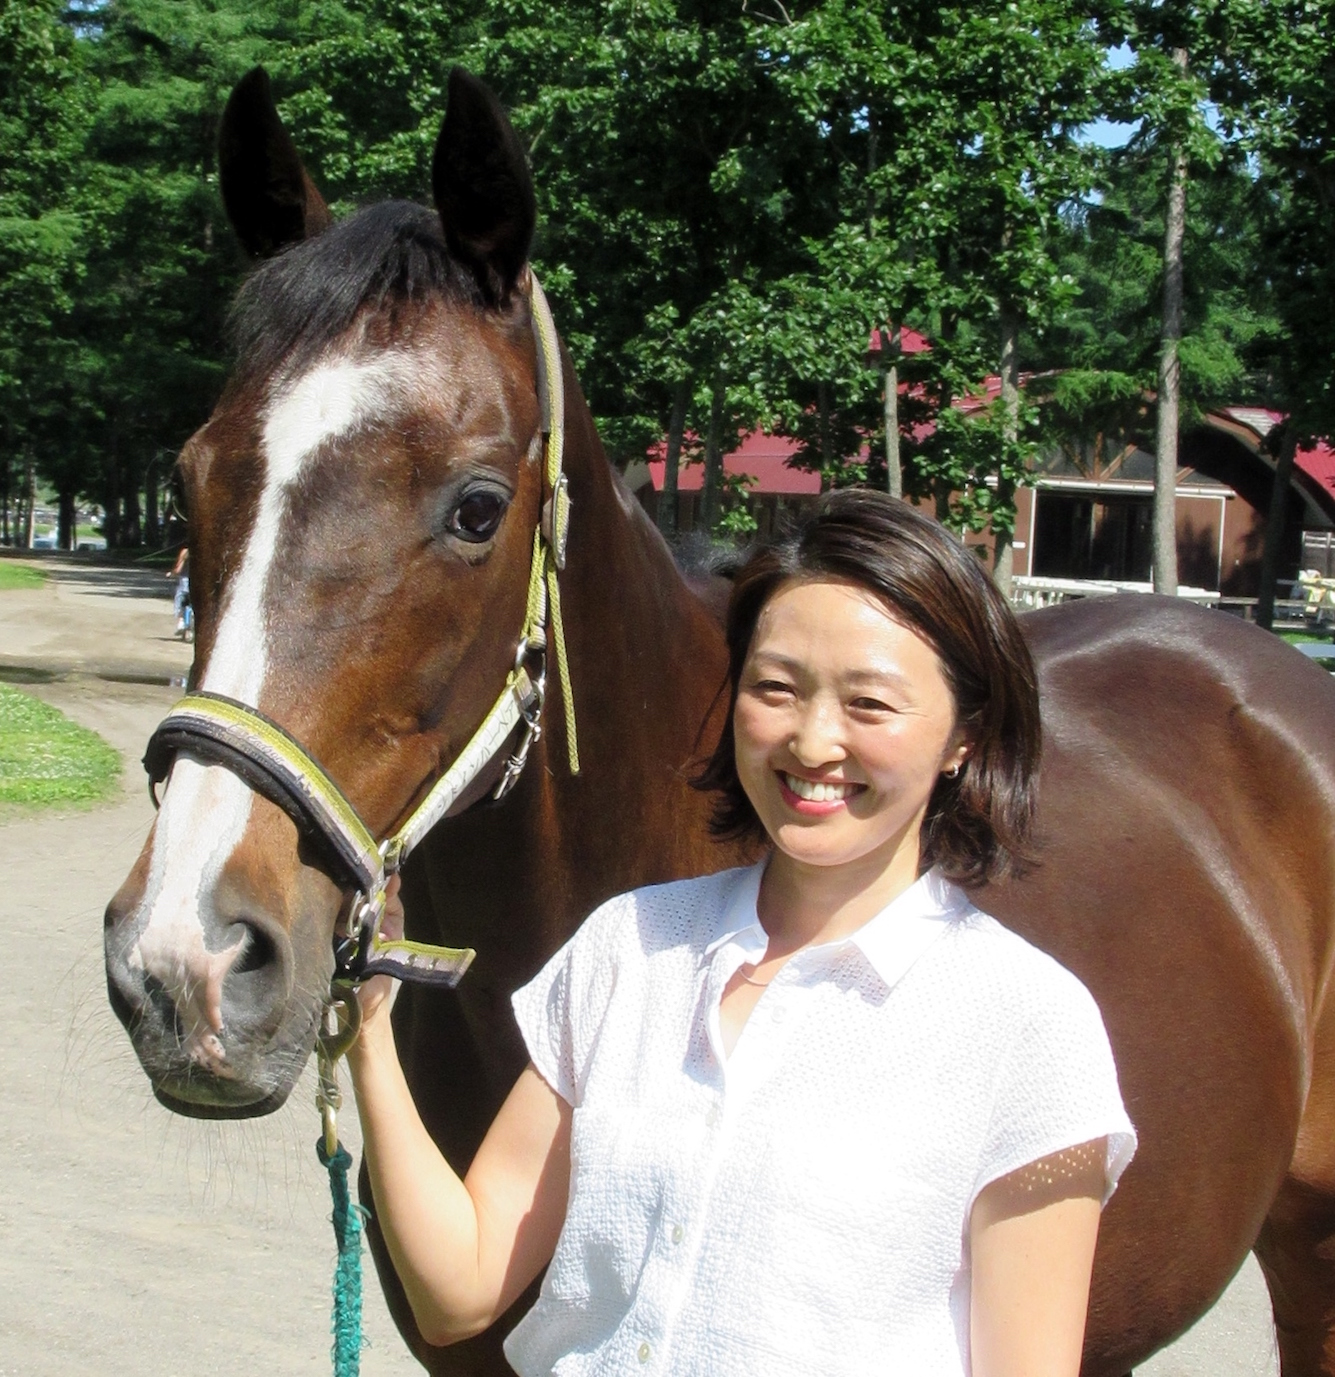 Sharing the family treasure: Wind In Her Hair, dam of Deep Impact, is popular with visitors to Northern Horse Park. She is pictured there with Akiko Yonemoto, NHP director and daughter of its founder, Katsumi Yoshida. Photo: Amanda Duckworth